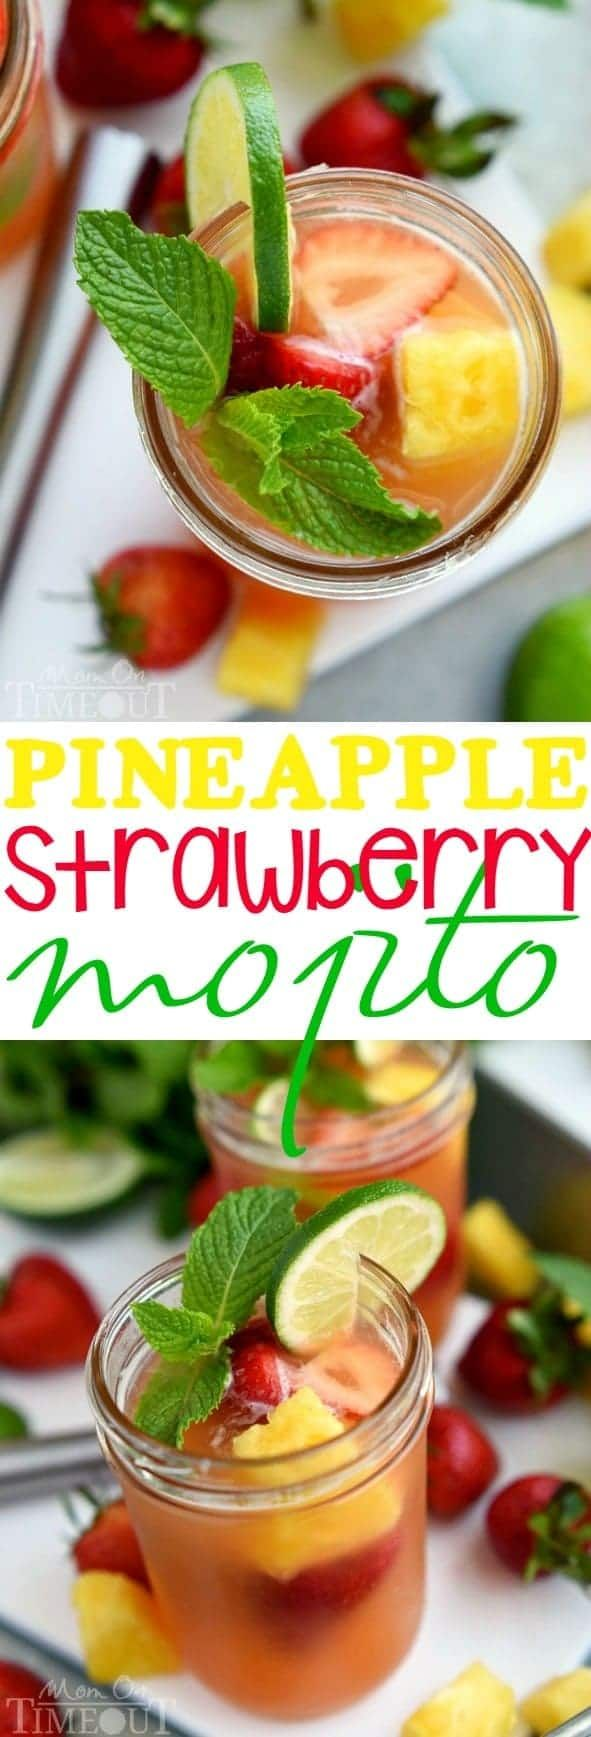 Pineapple Strawberry Mojito -Perfectly cool, sweet, and SO refreshing, this fruit-infused cocktail has it all! So easy to make and pretty darn easy on the eyes! (Can be made virgin!) | MomOnTimeout.com